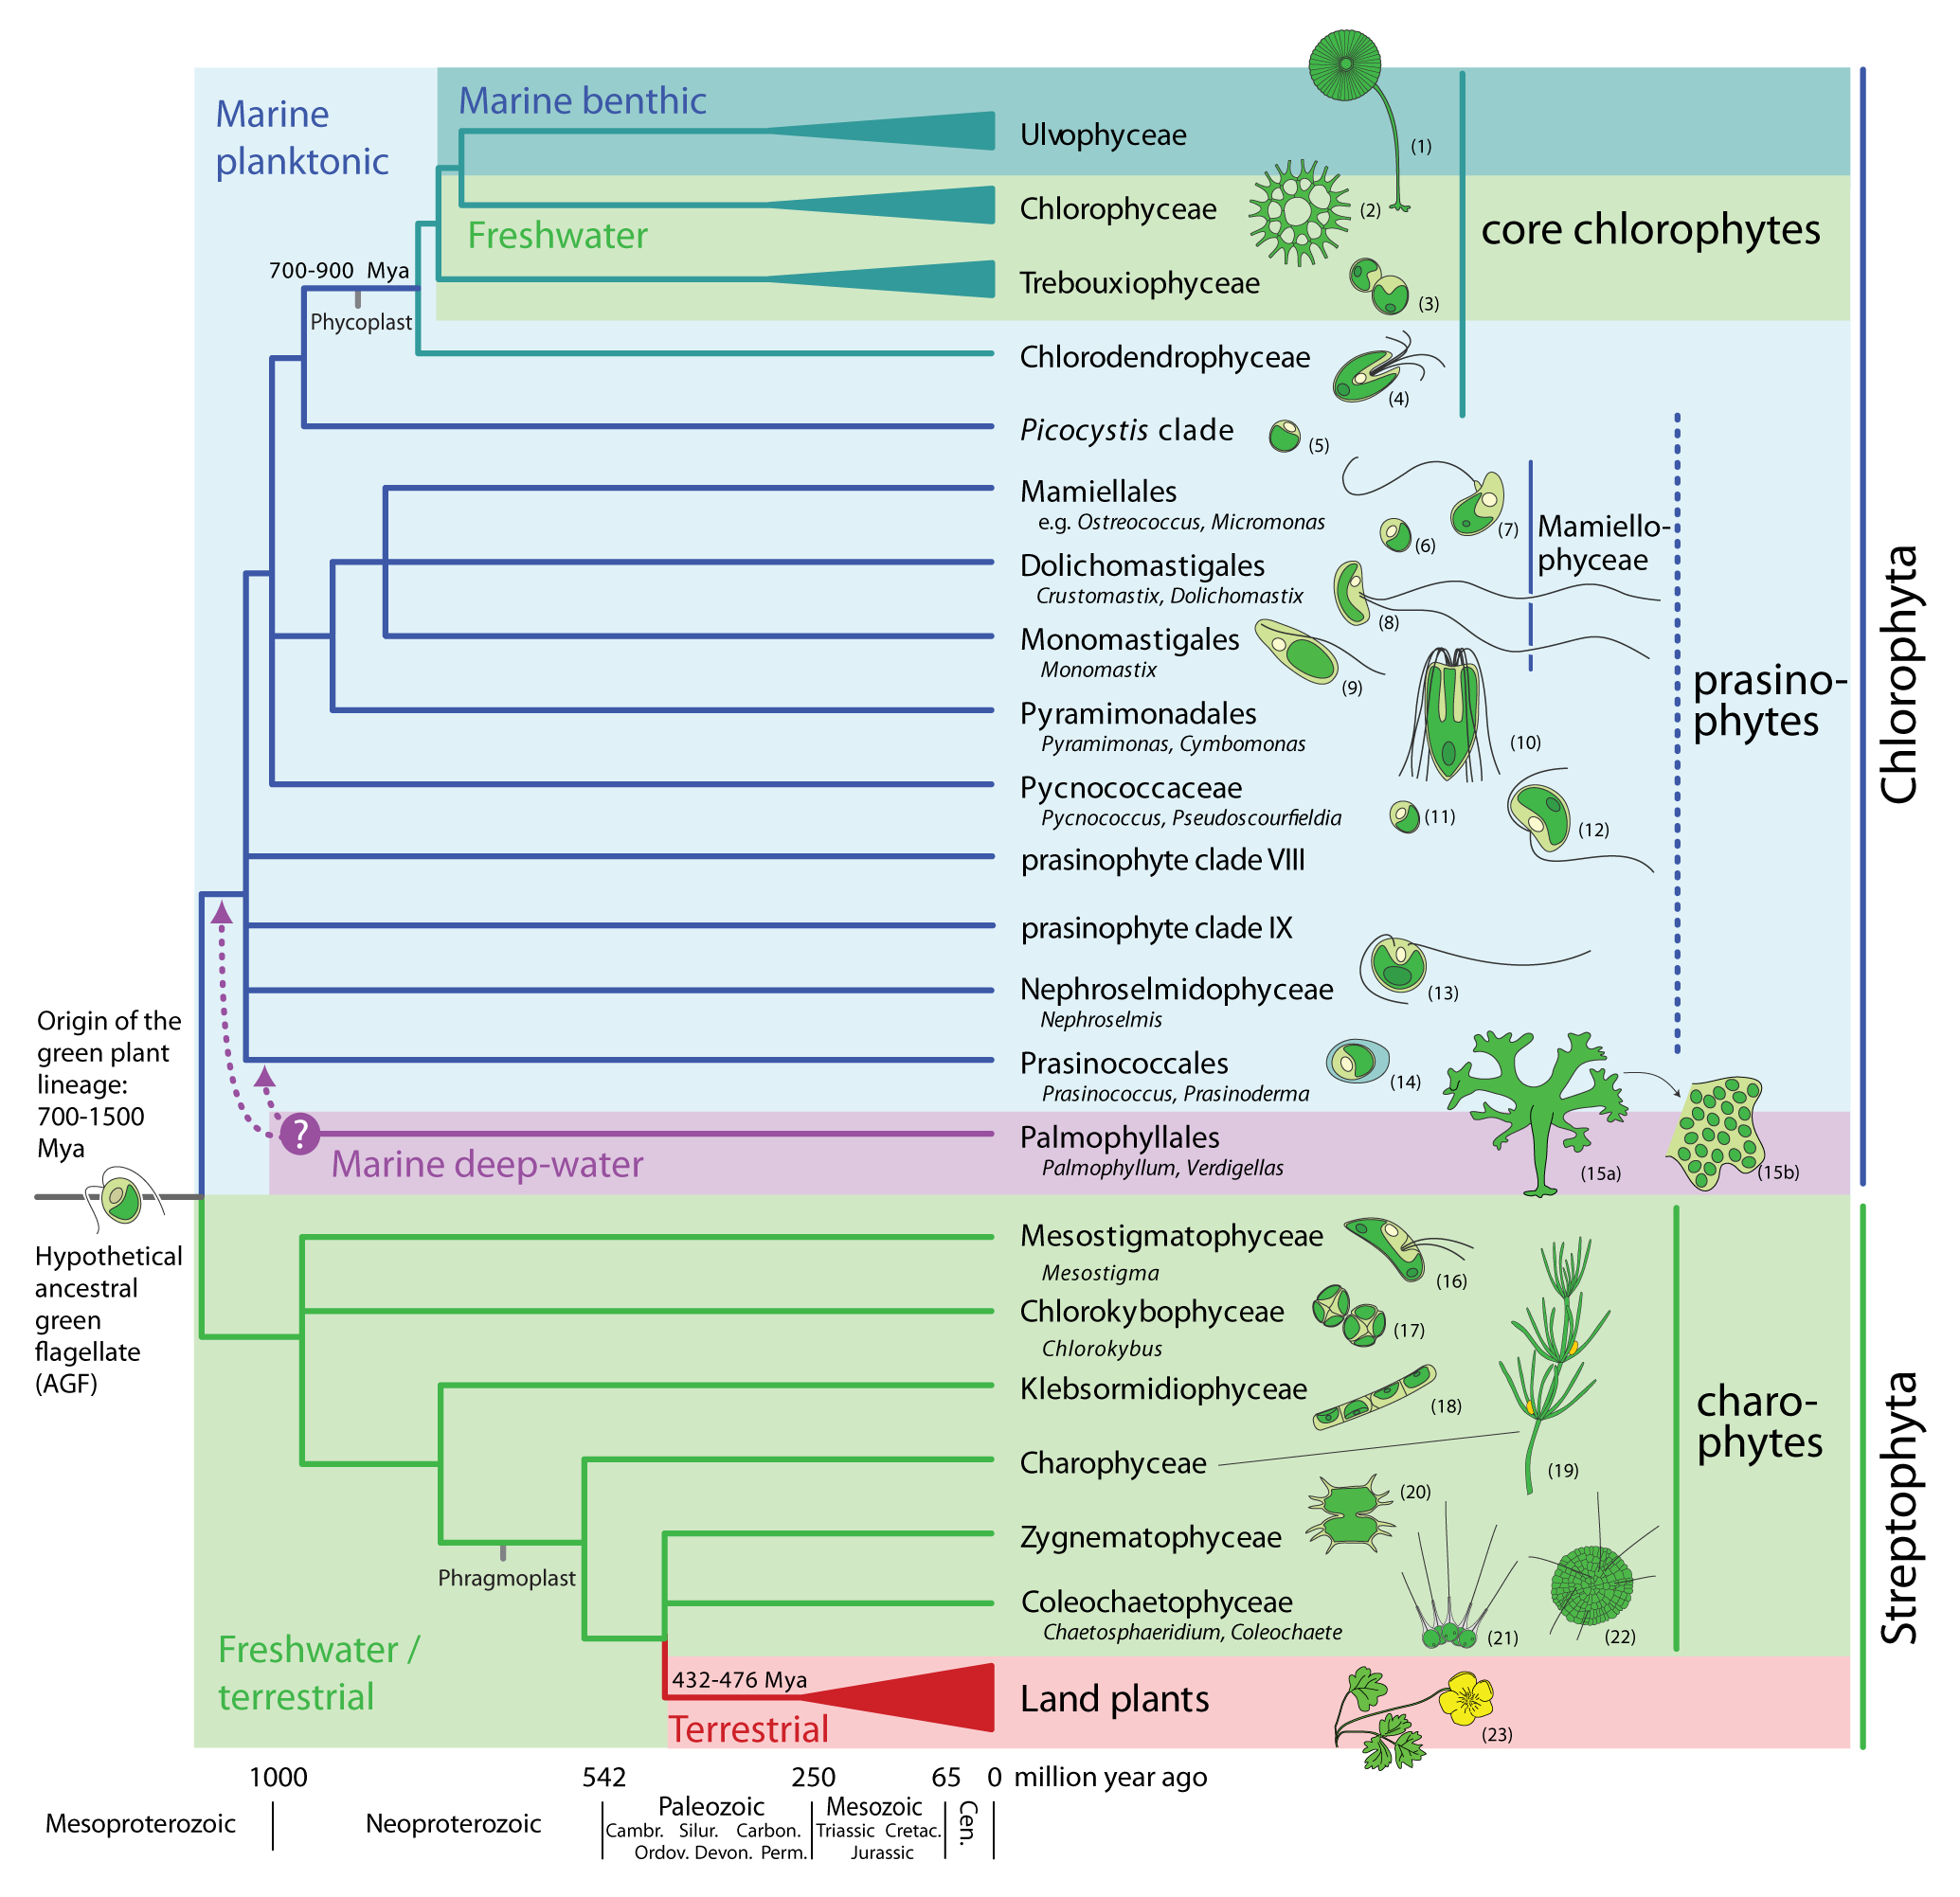 new discoveries at the base of the green plant phylogeny